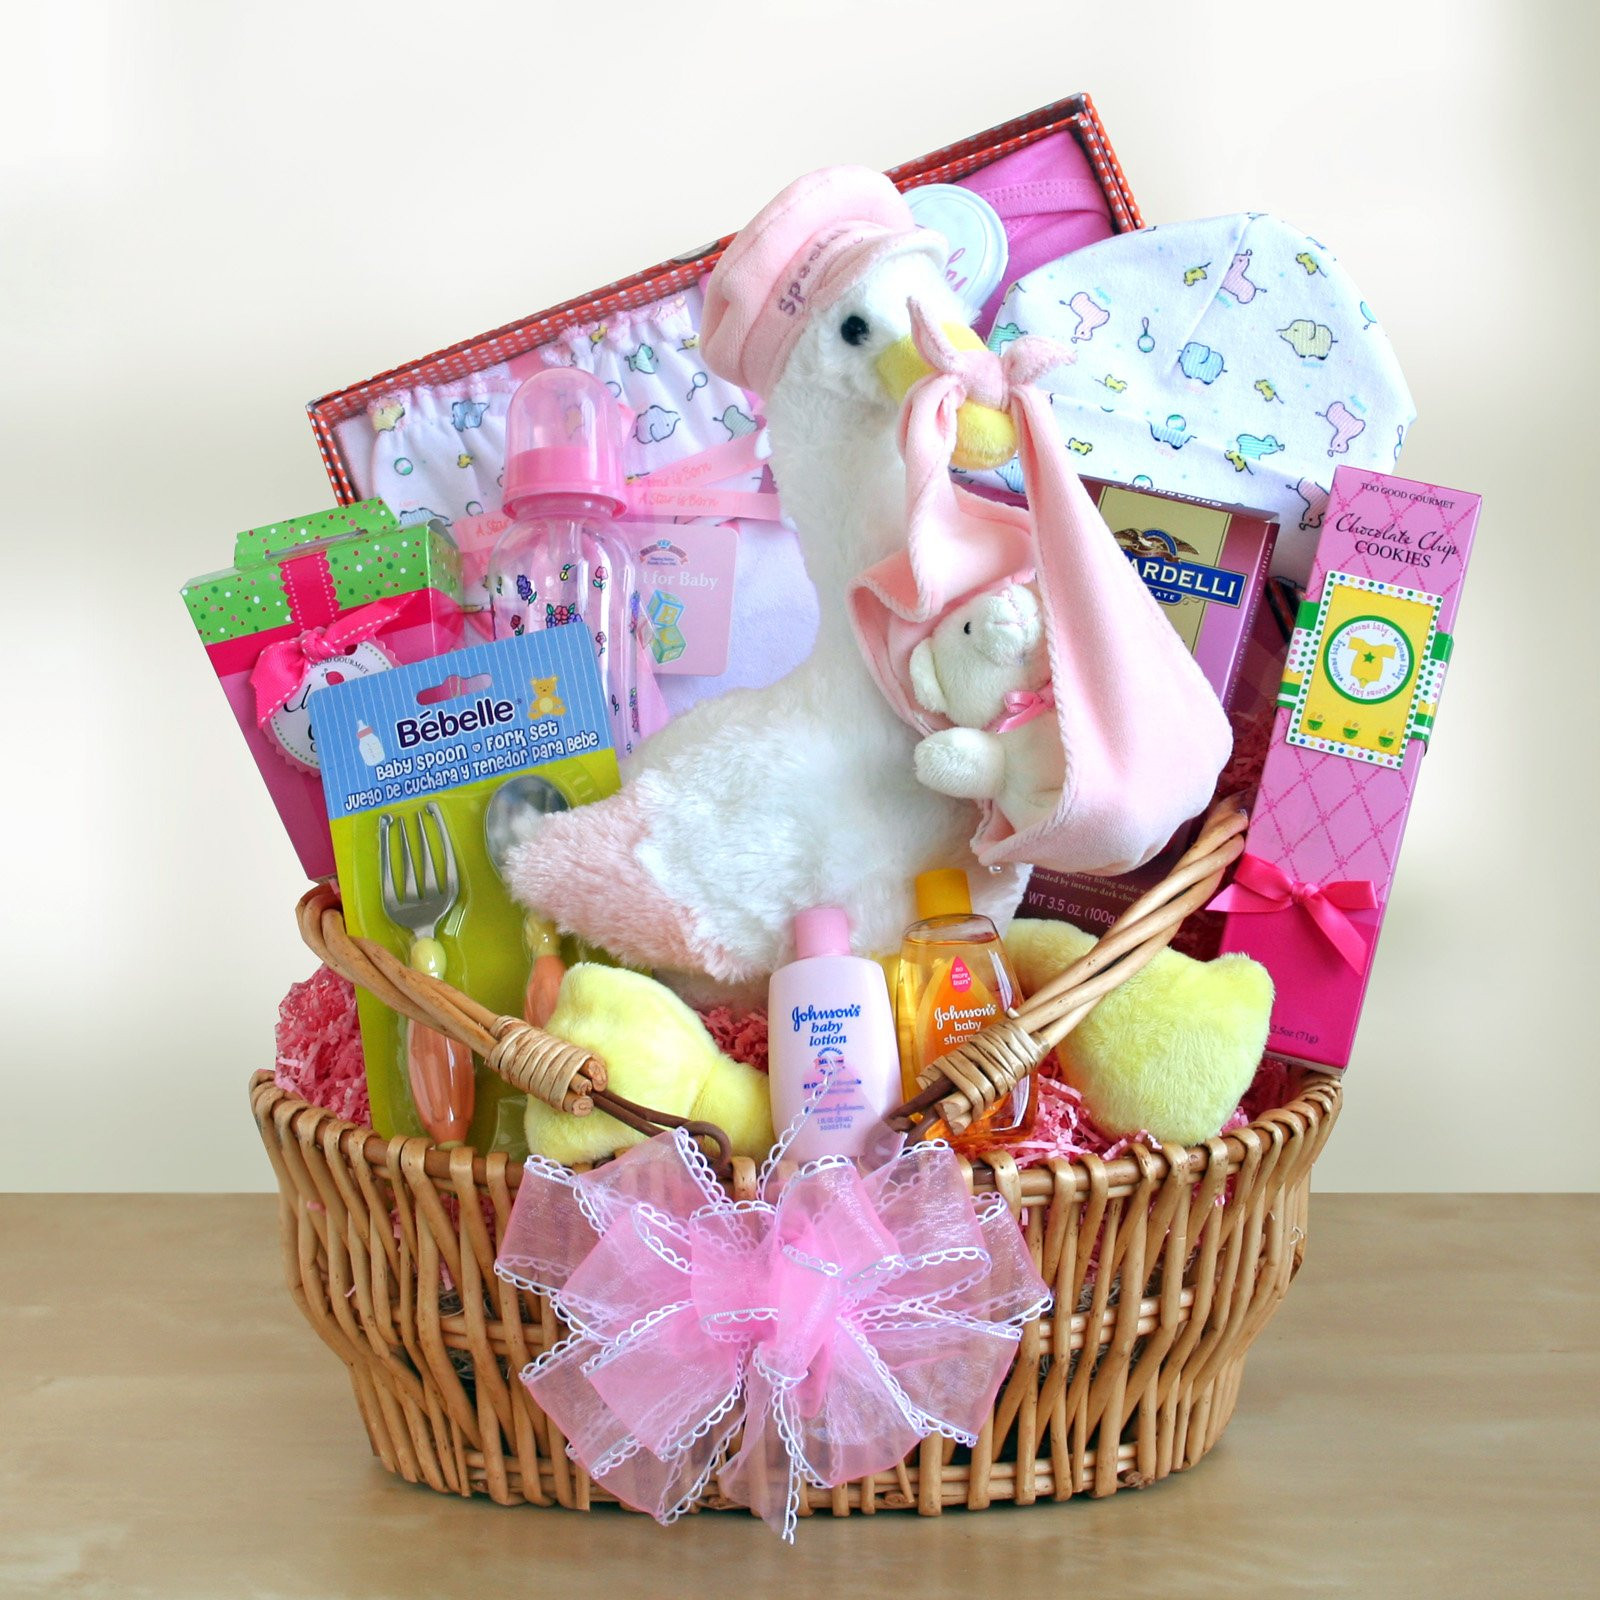 Personalized Baby Gift Ideas  Top 7 Unique Newborn Baby Gift Basket Ideas